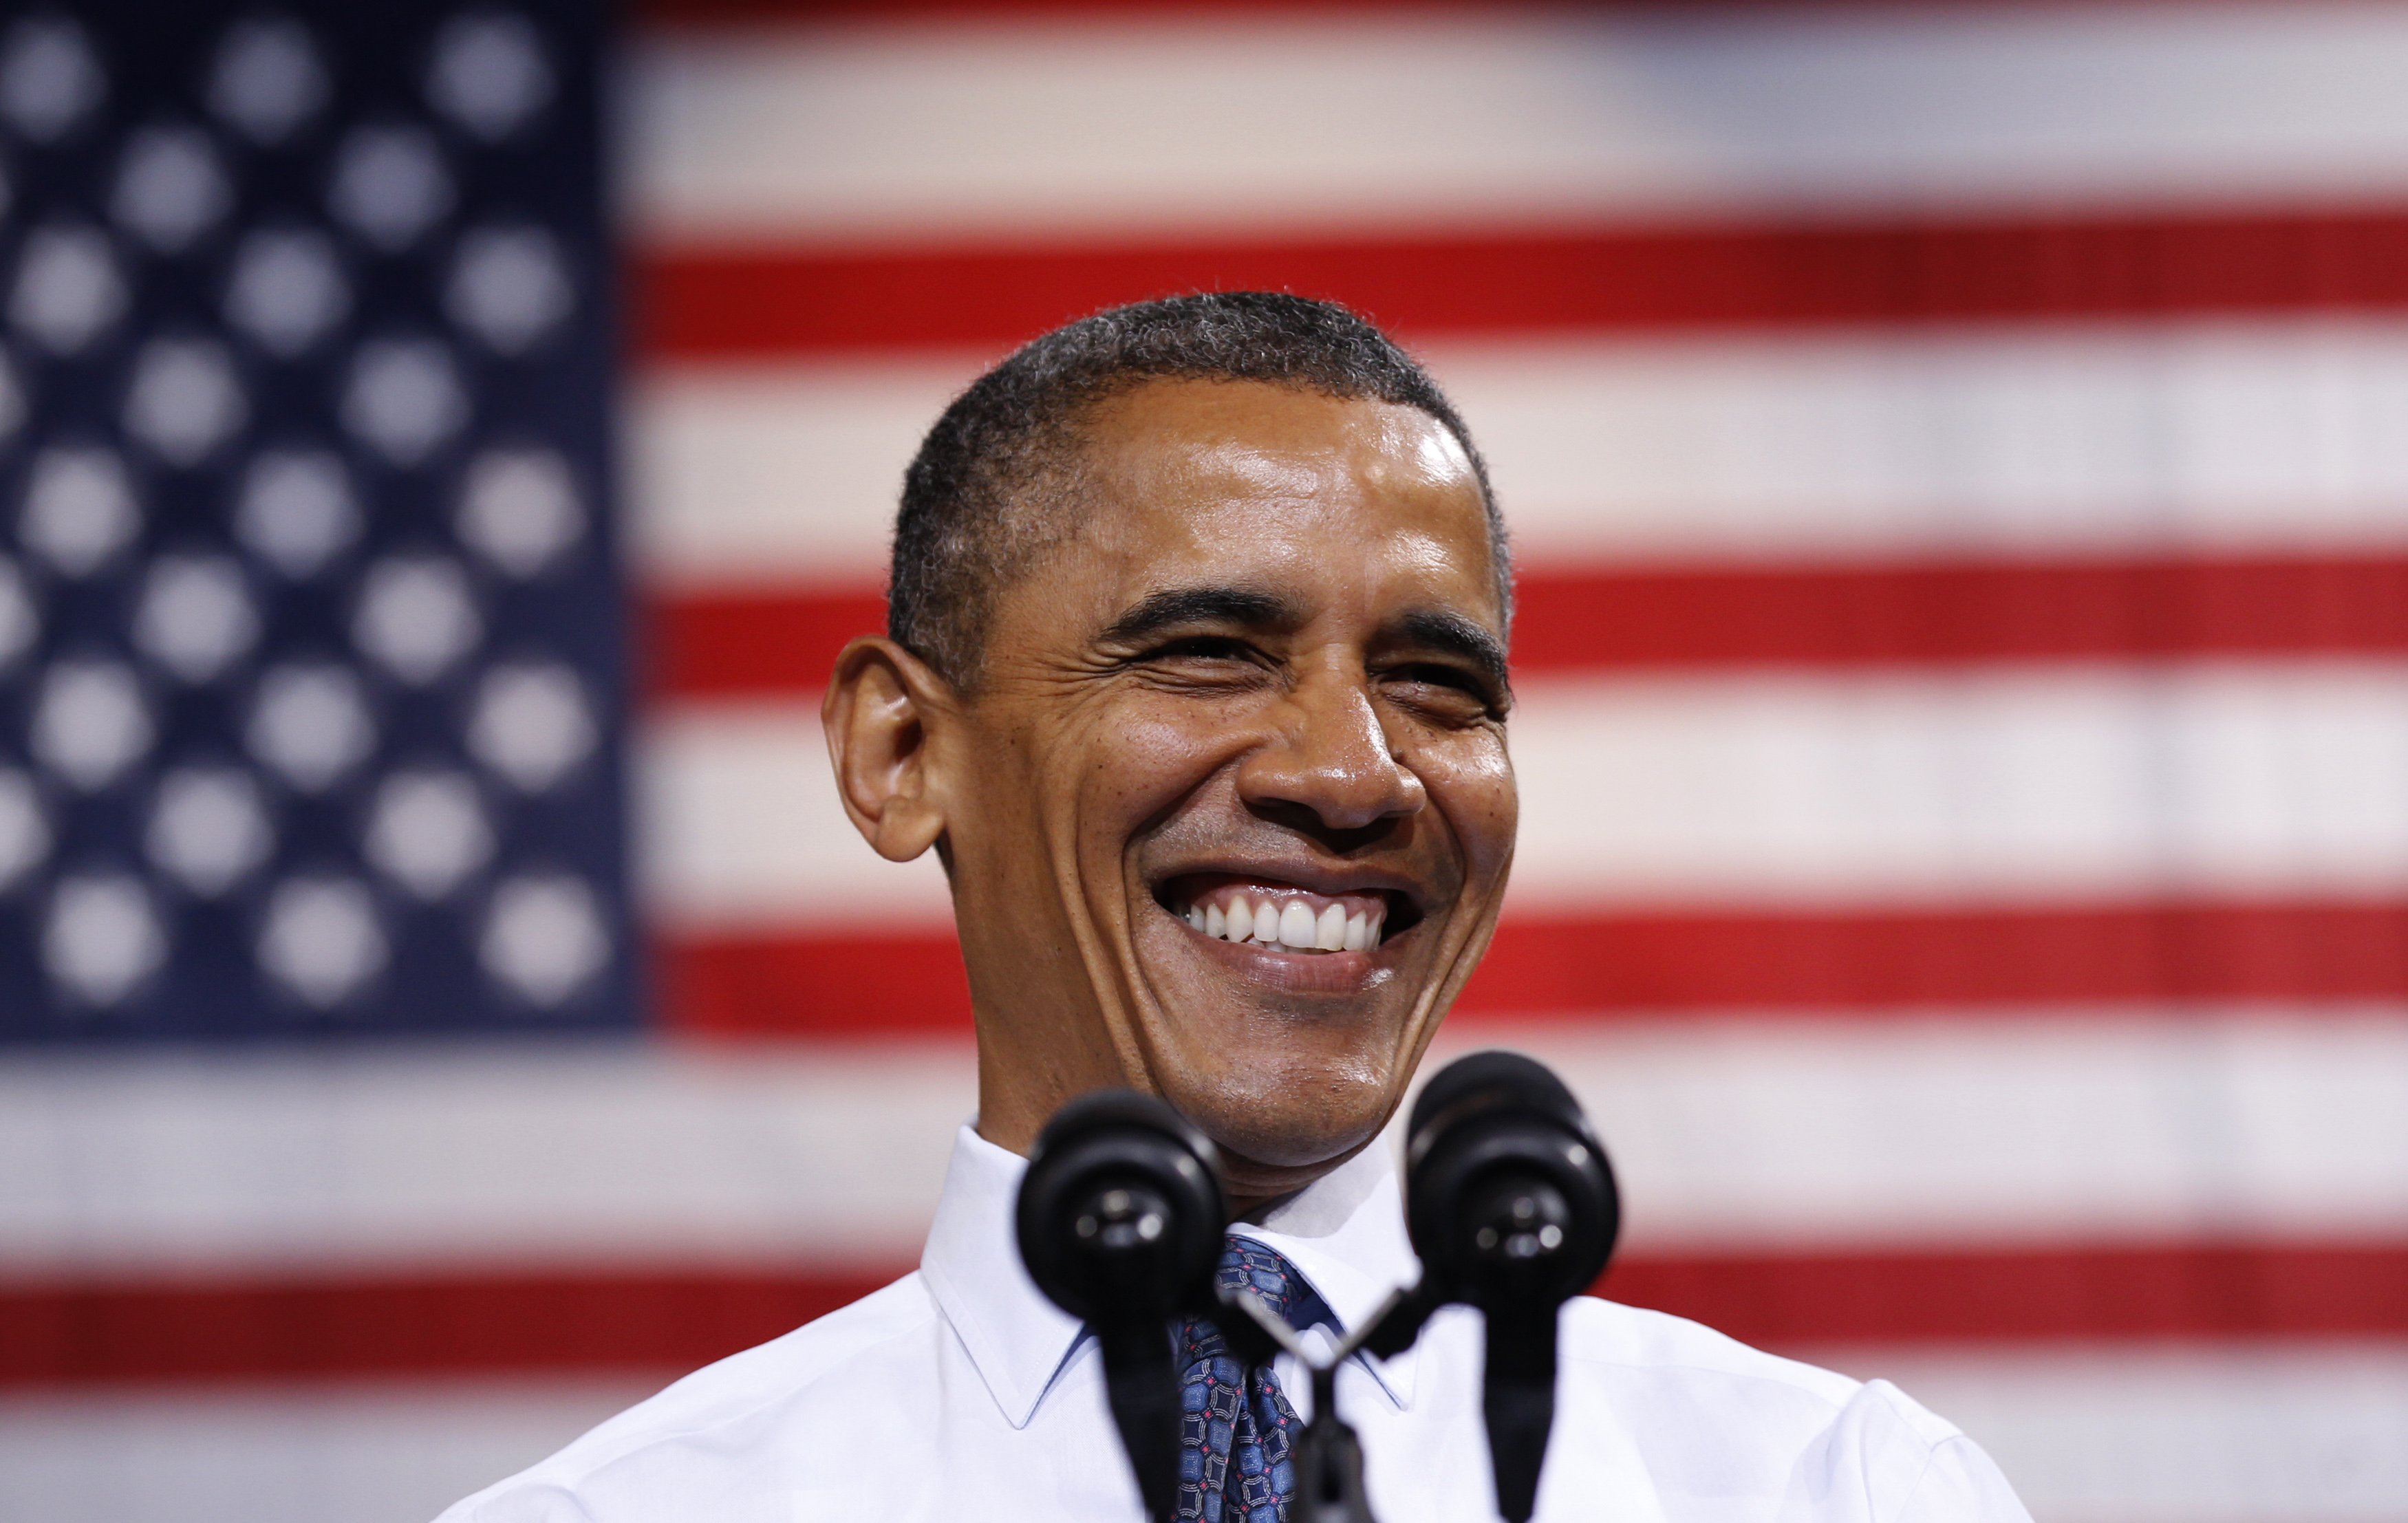 President Barack Obama smiles as he speaks during a campaign rally in Fairfax, Va. (Kevin Lamarque/Reuters)